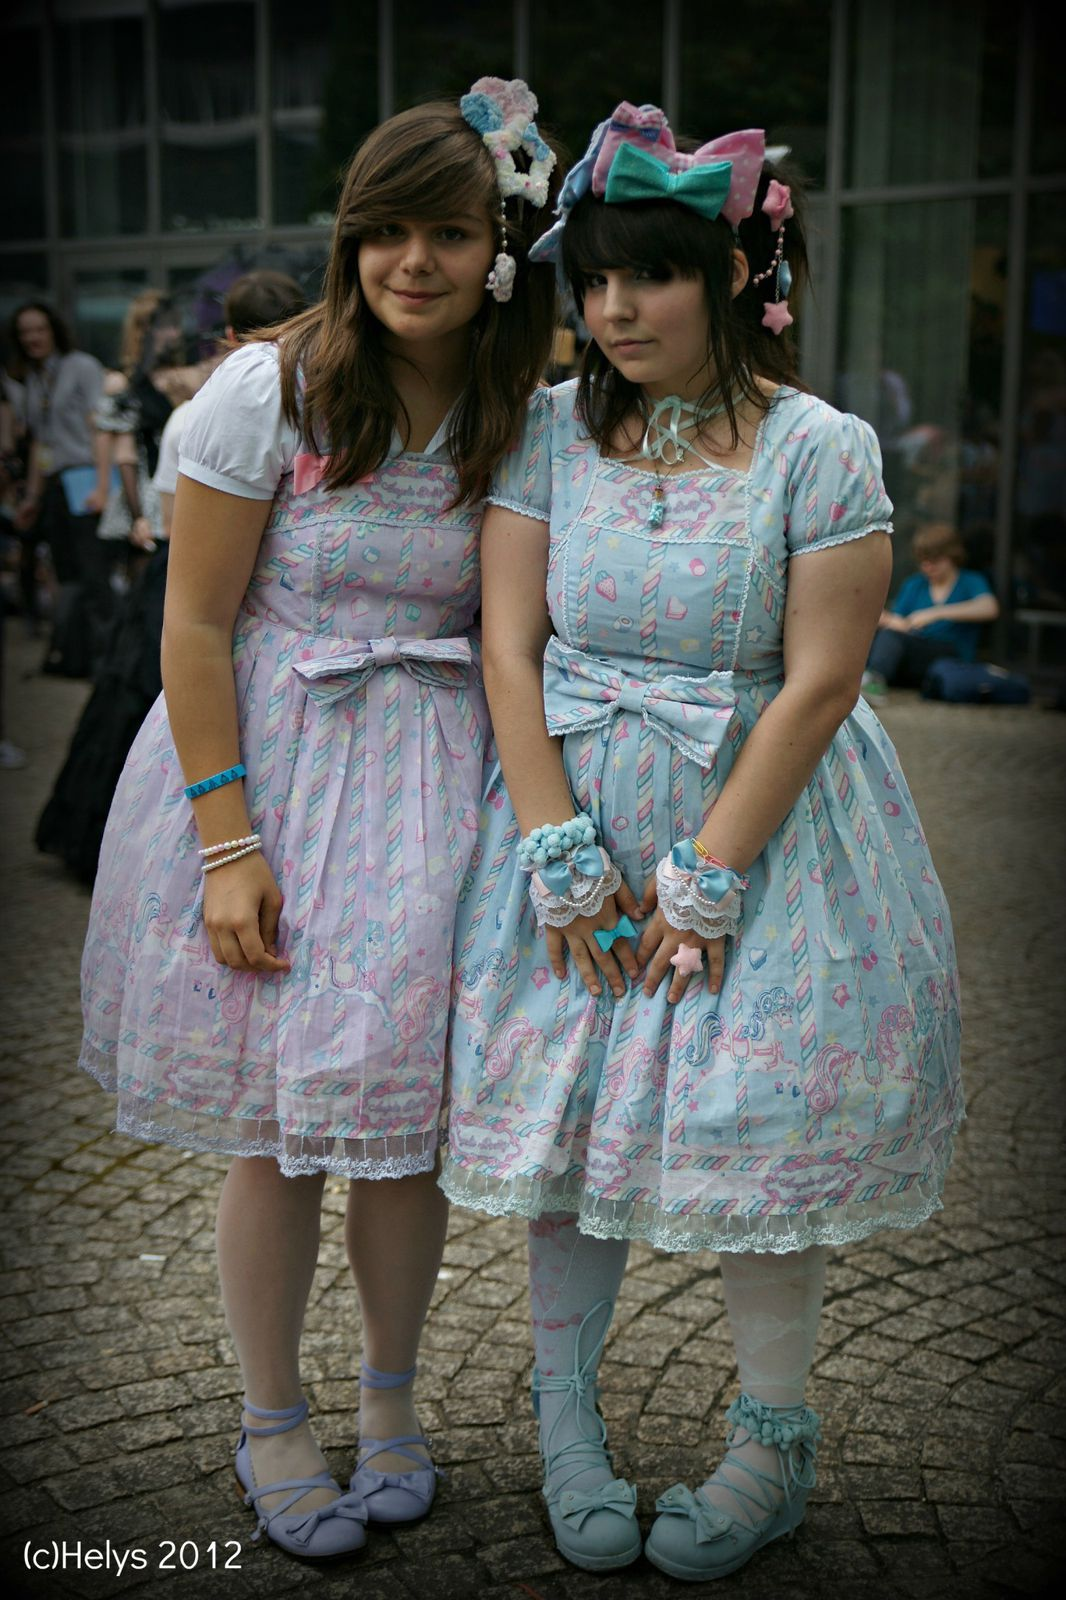 Photo (c)Helys japan expo 2012 ~A SUIVRE ~